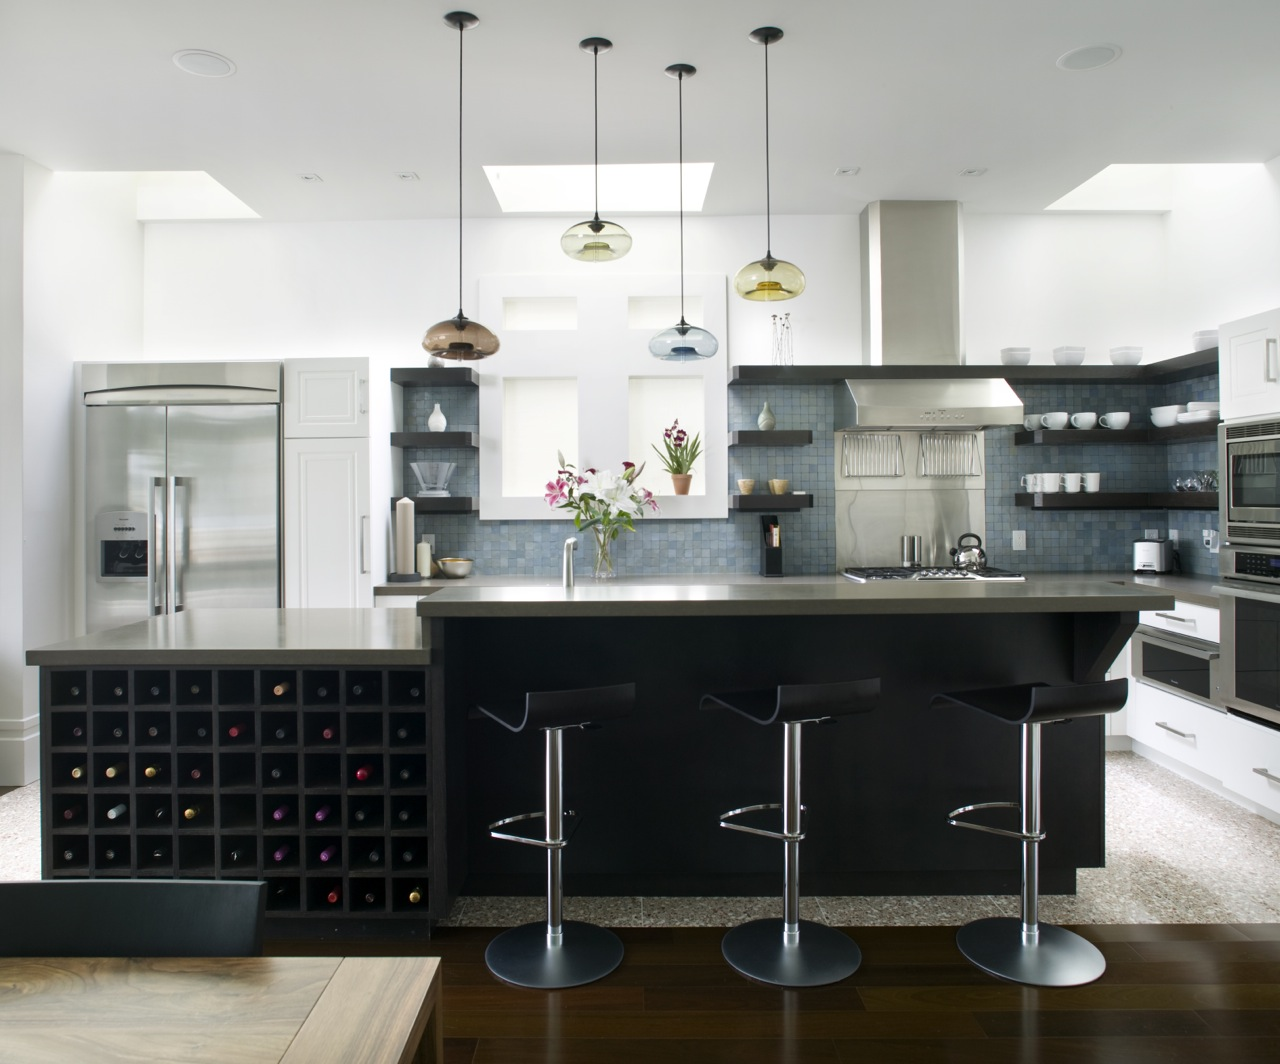 Kitchen modern design and renovations, home renovations Calgary general contractor company additions modern contemporary .jpg